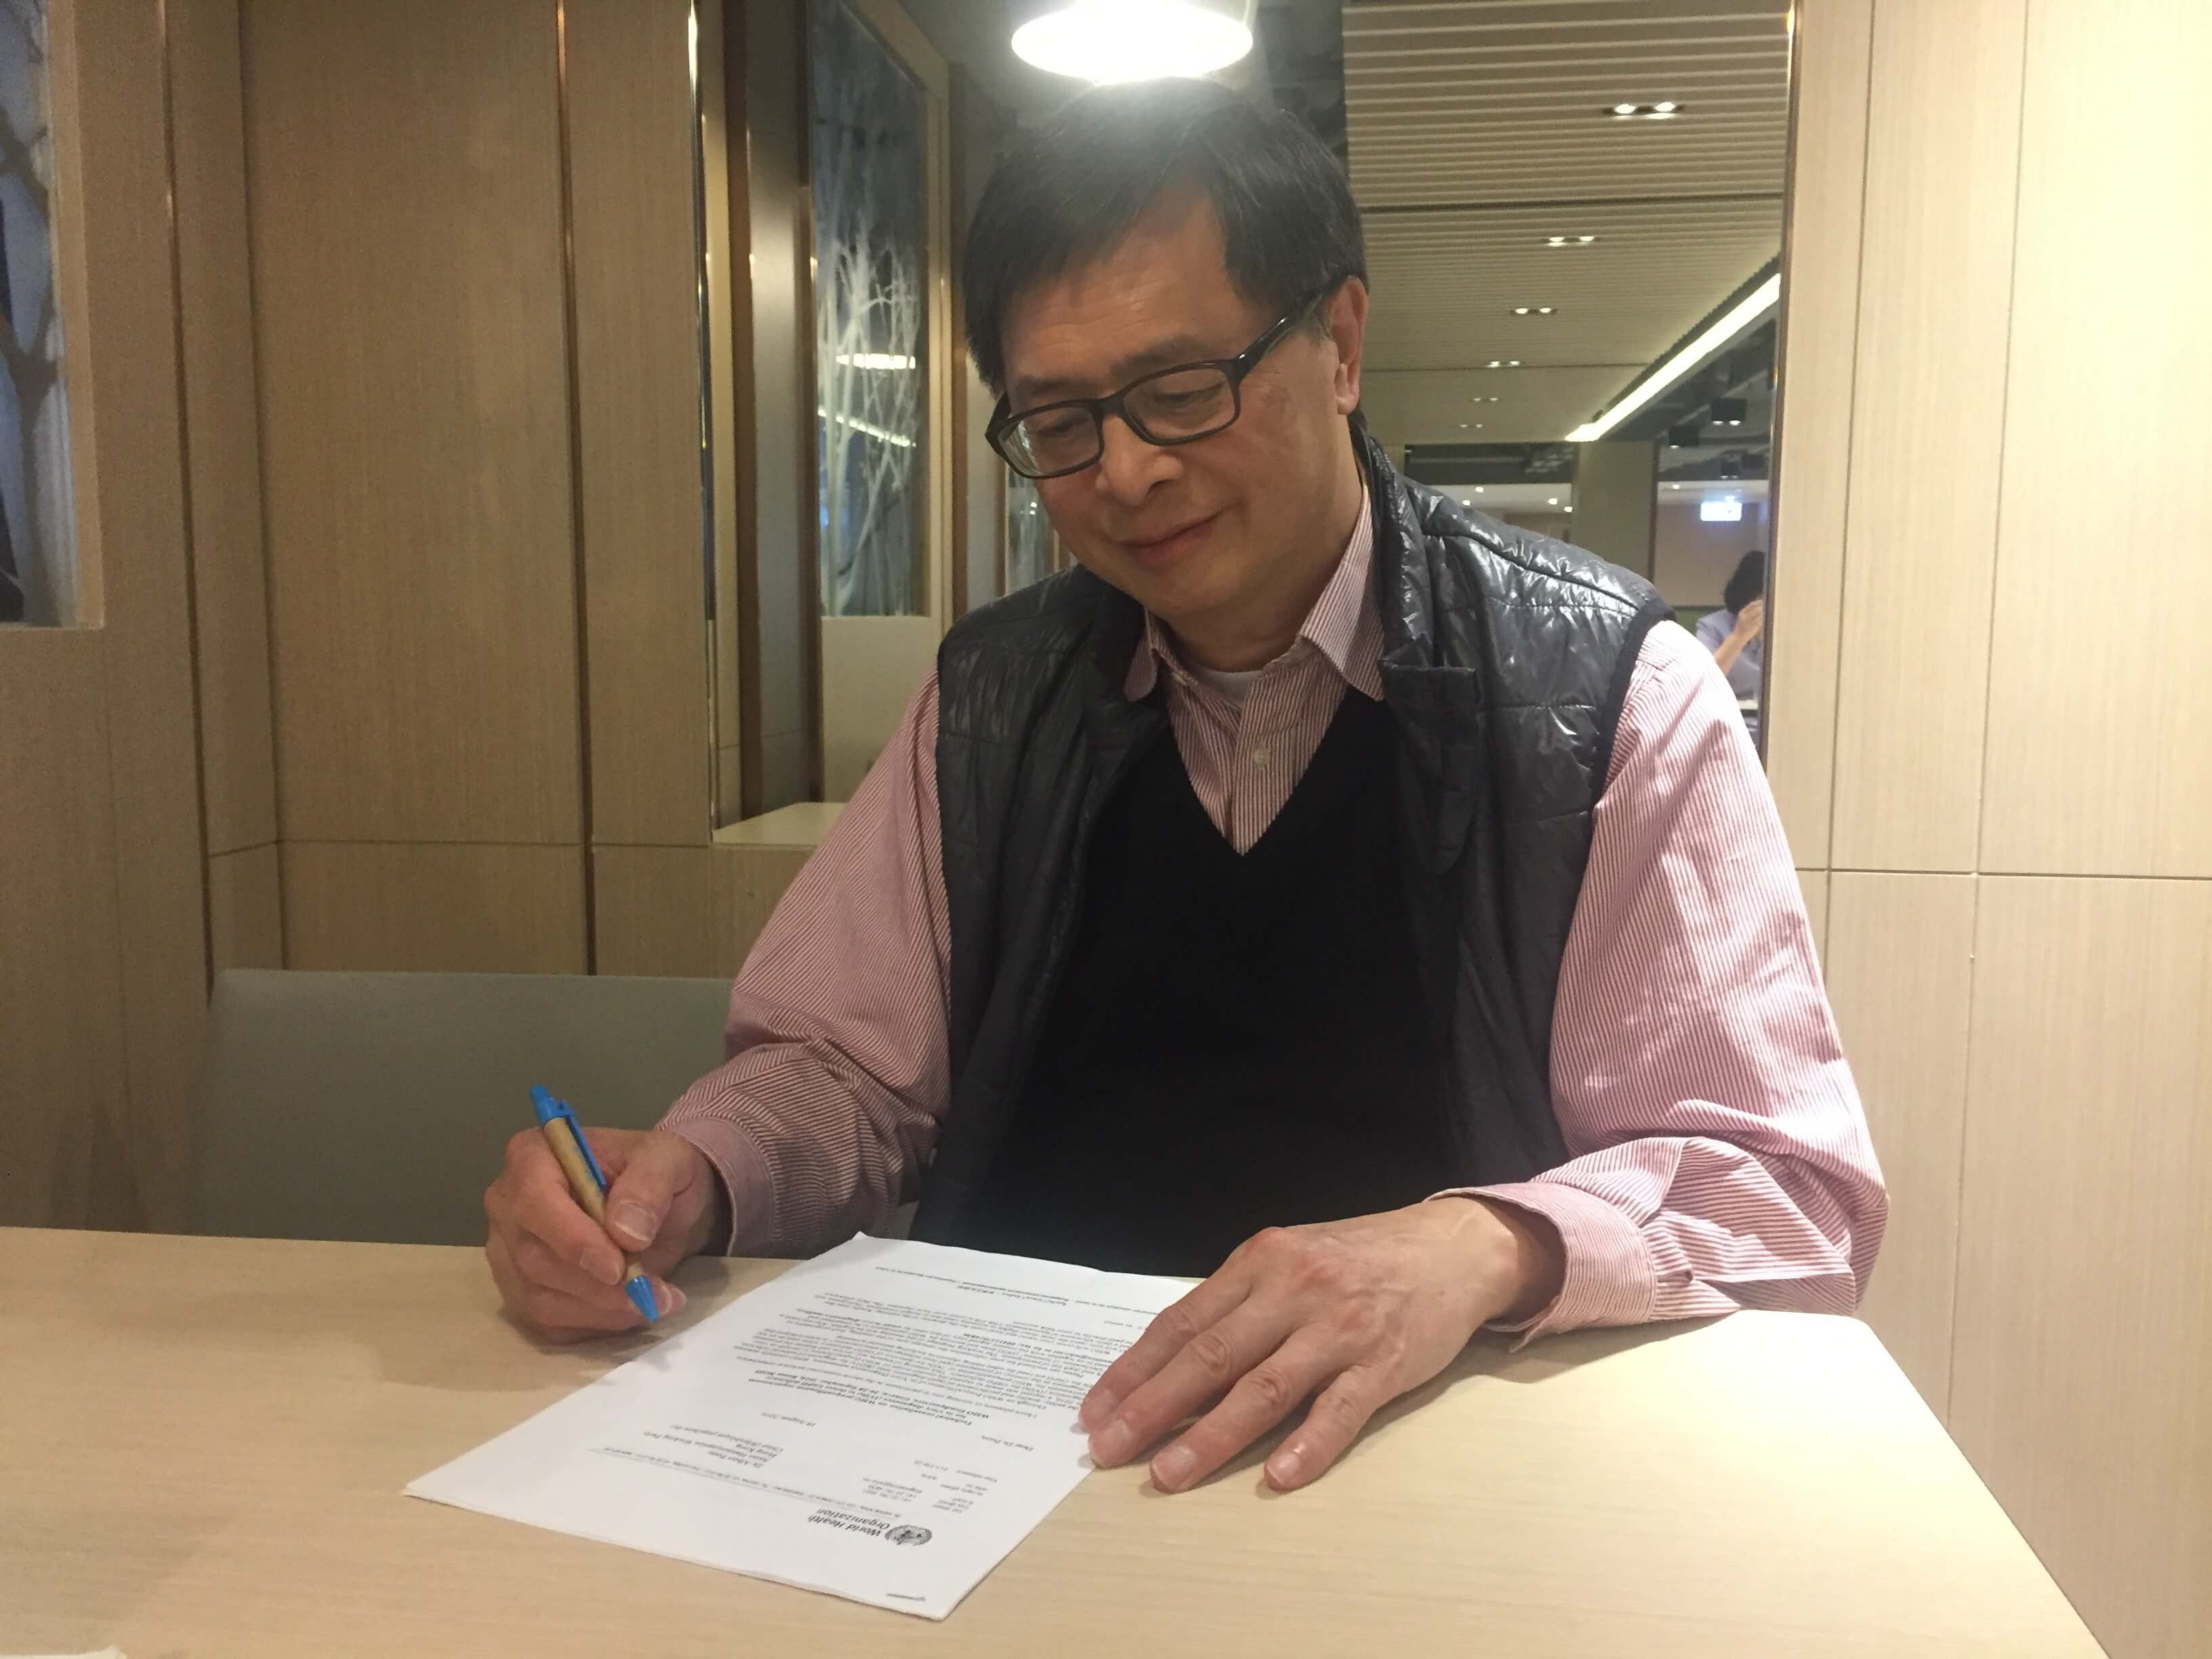 Albert Poon Kat-fat, a professor of Practice (Biomedical Engineering) in The Hong Kong Polytechnic University. He initialized the previous medical device proposal in 2003 as a professional on medical device regulation.